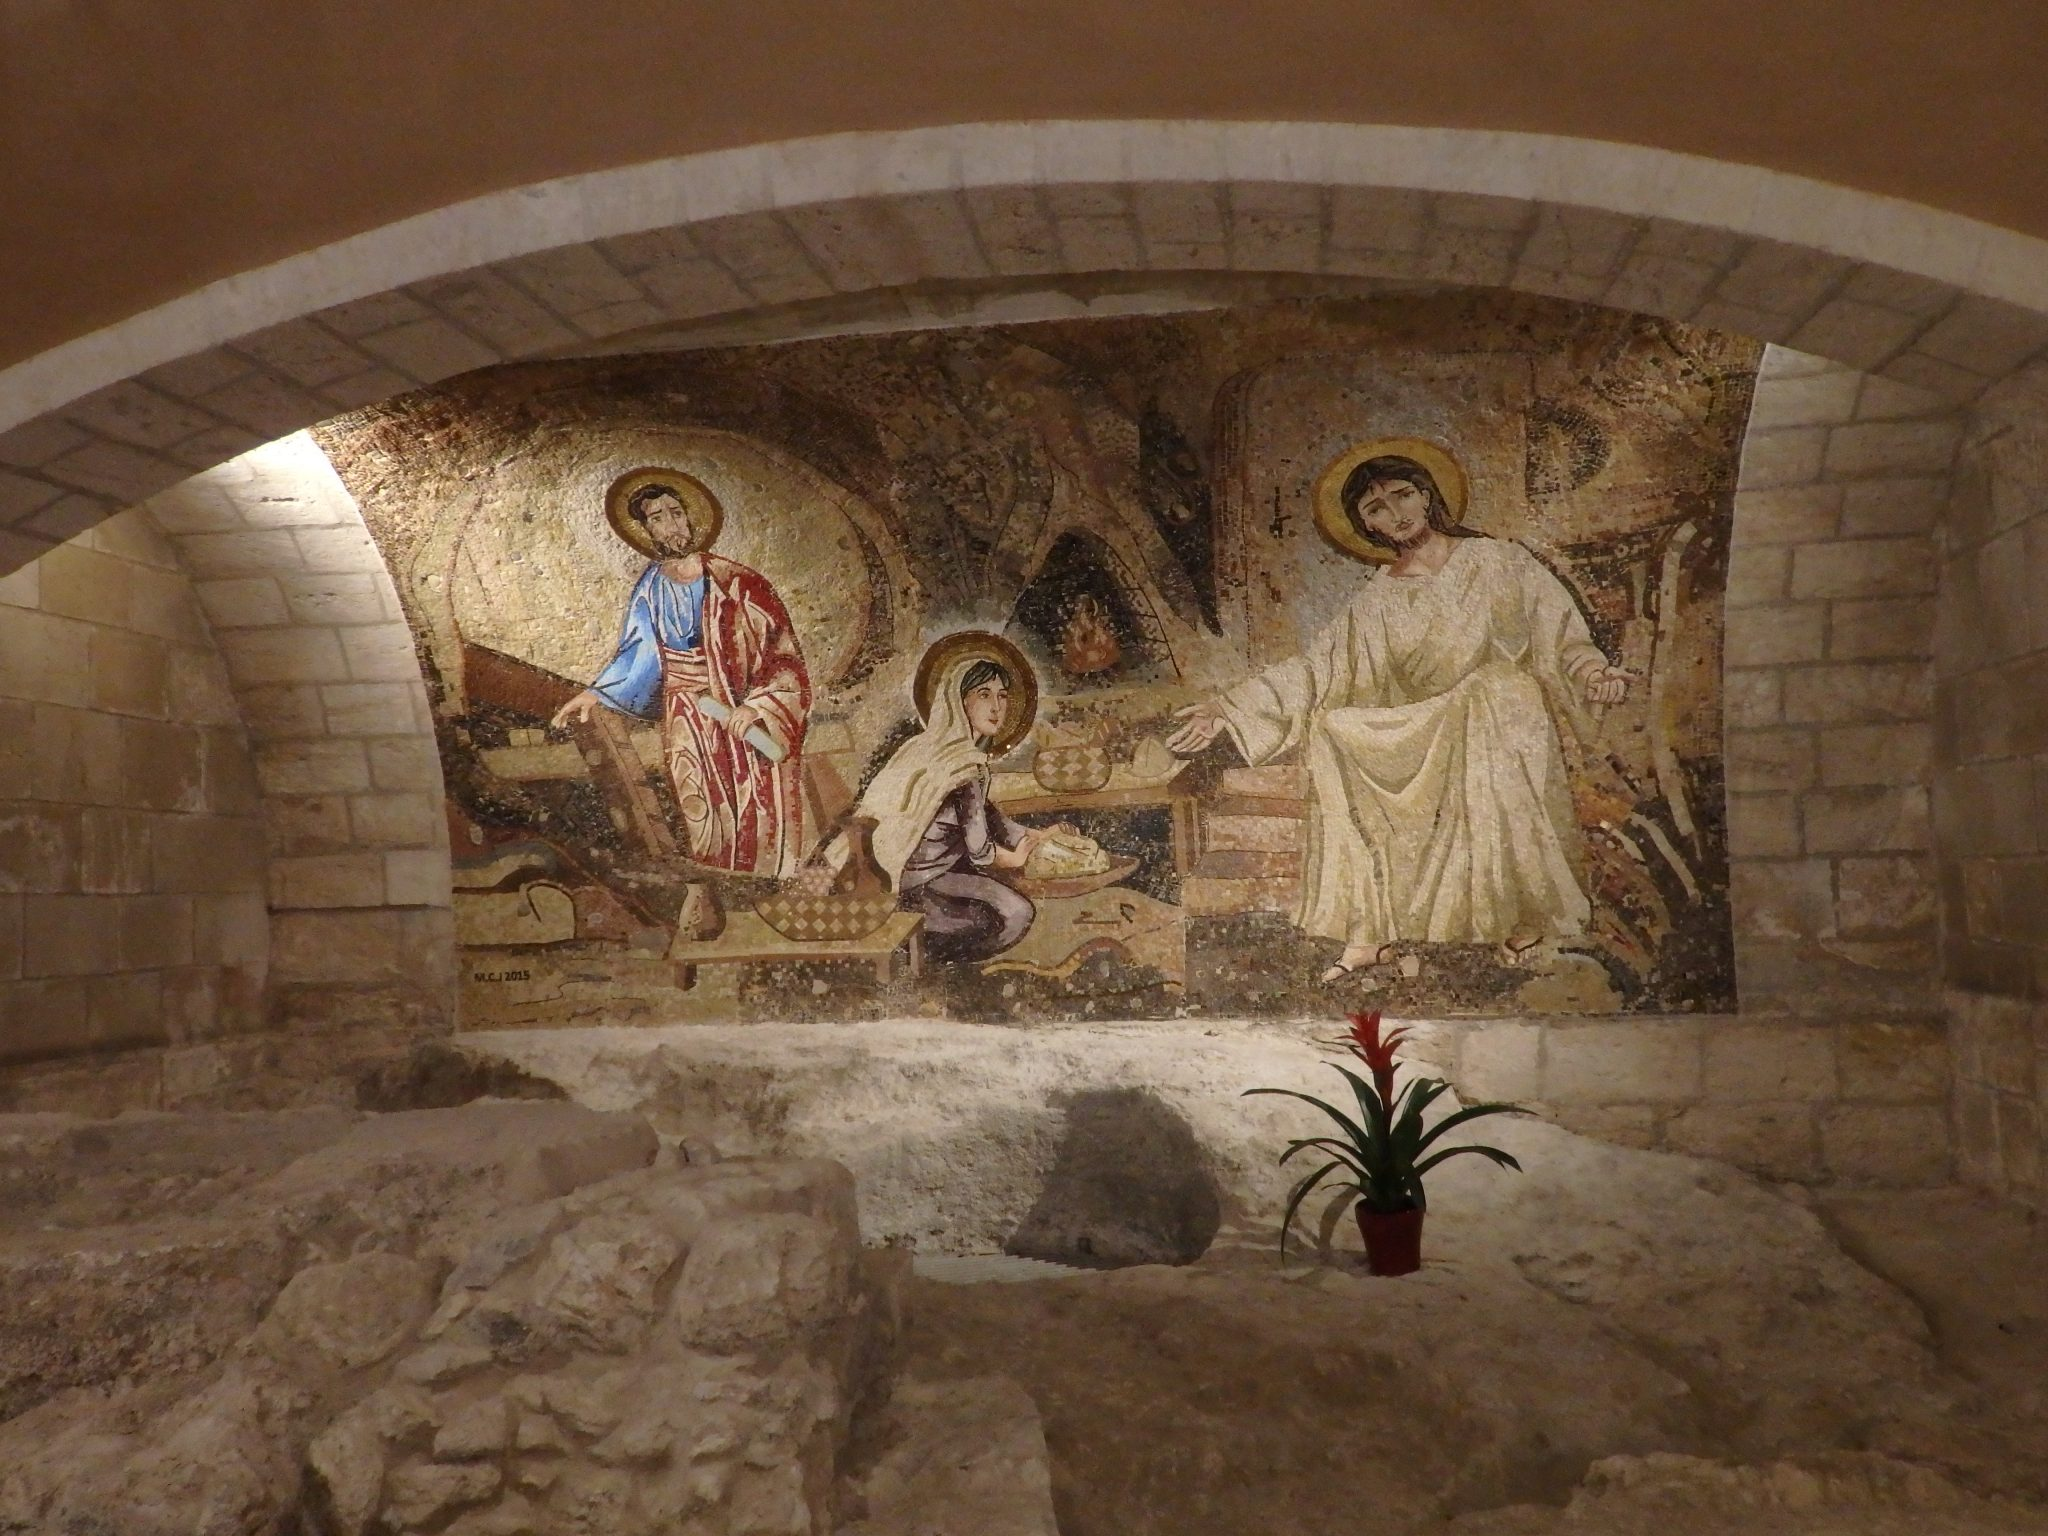 This mosaic adorns a wall in the basement of the Church of St. Joseph, above the spot where Joseph's shop or home stood in biblical Nazareth.